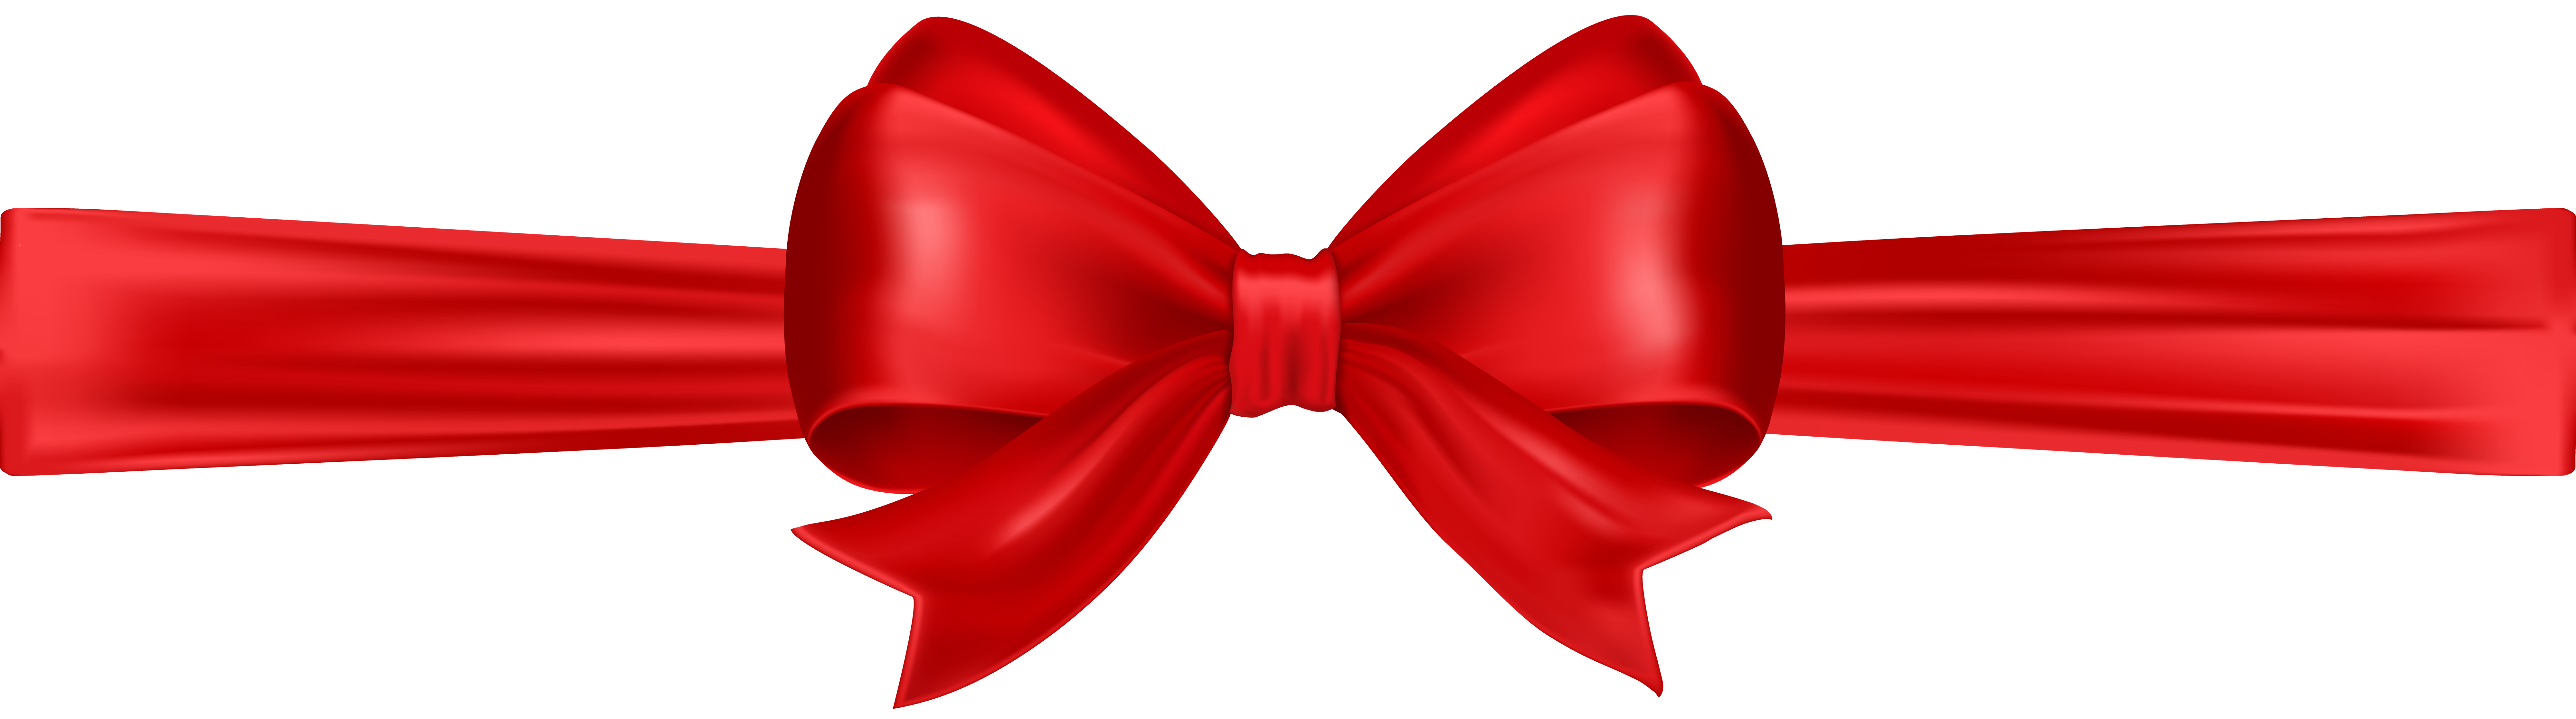 Clip art png image. Clipart bow red